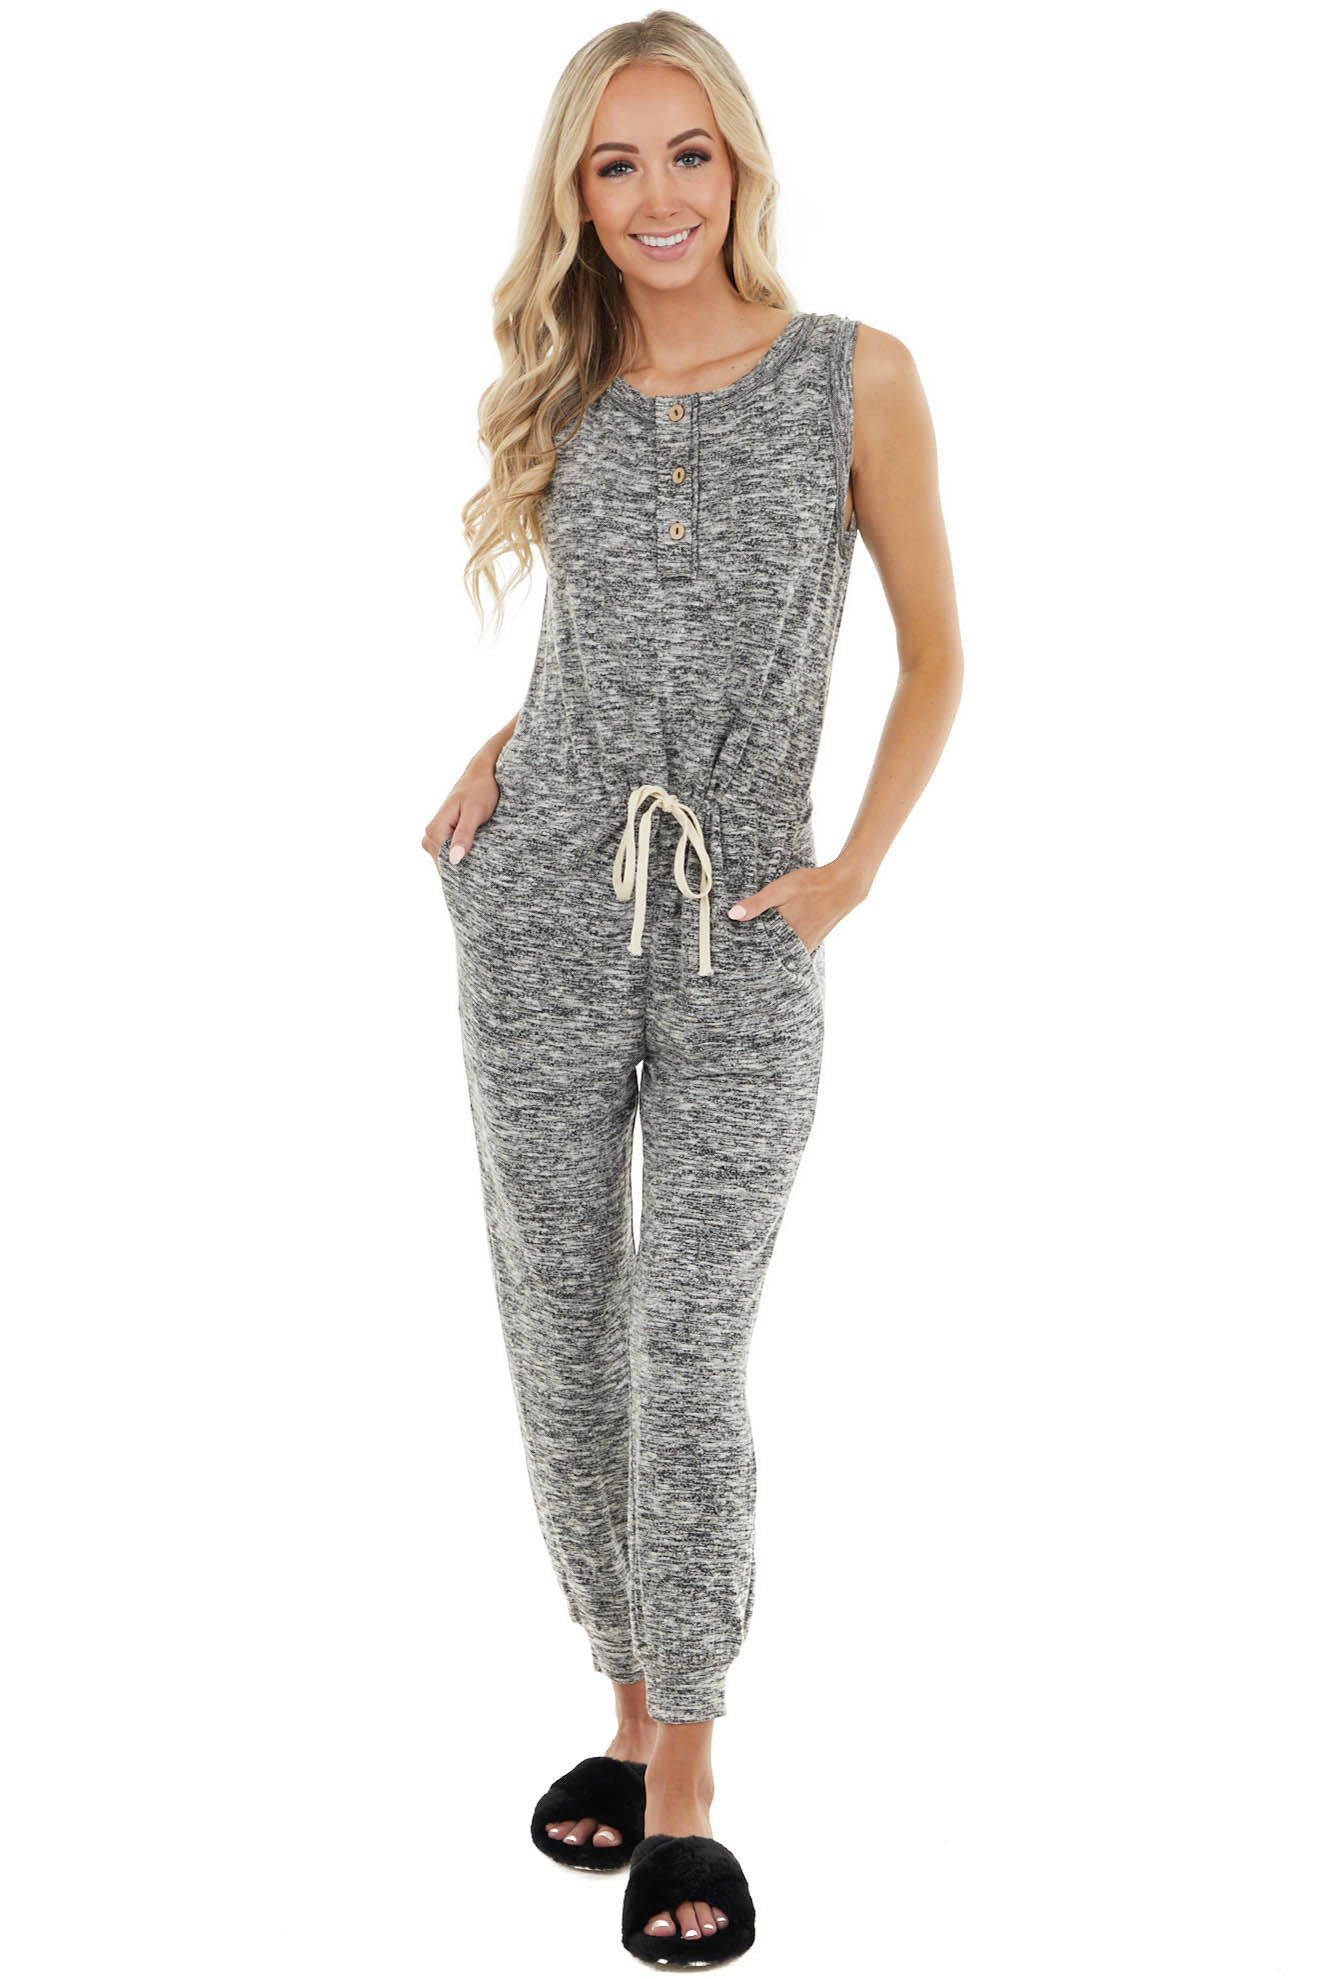 Black and White Sleeveless Jumpsuit with Button Details